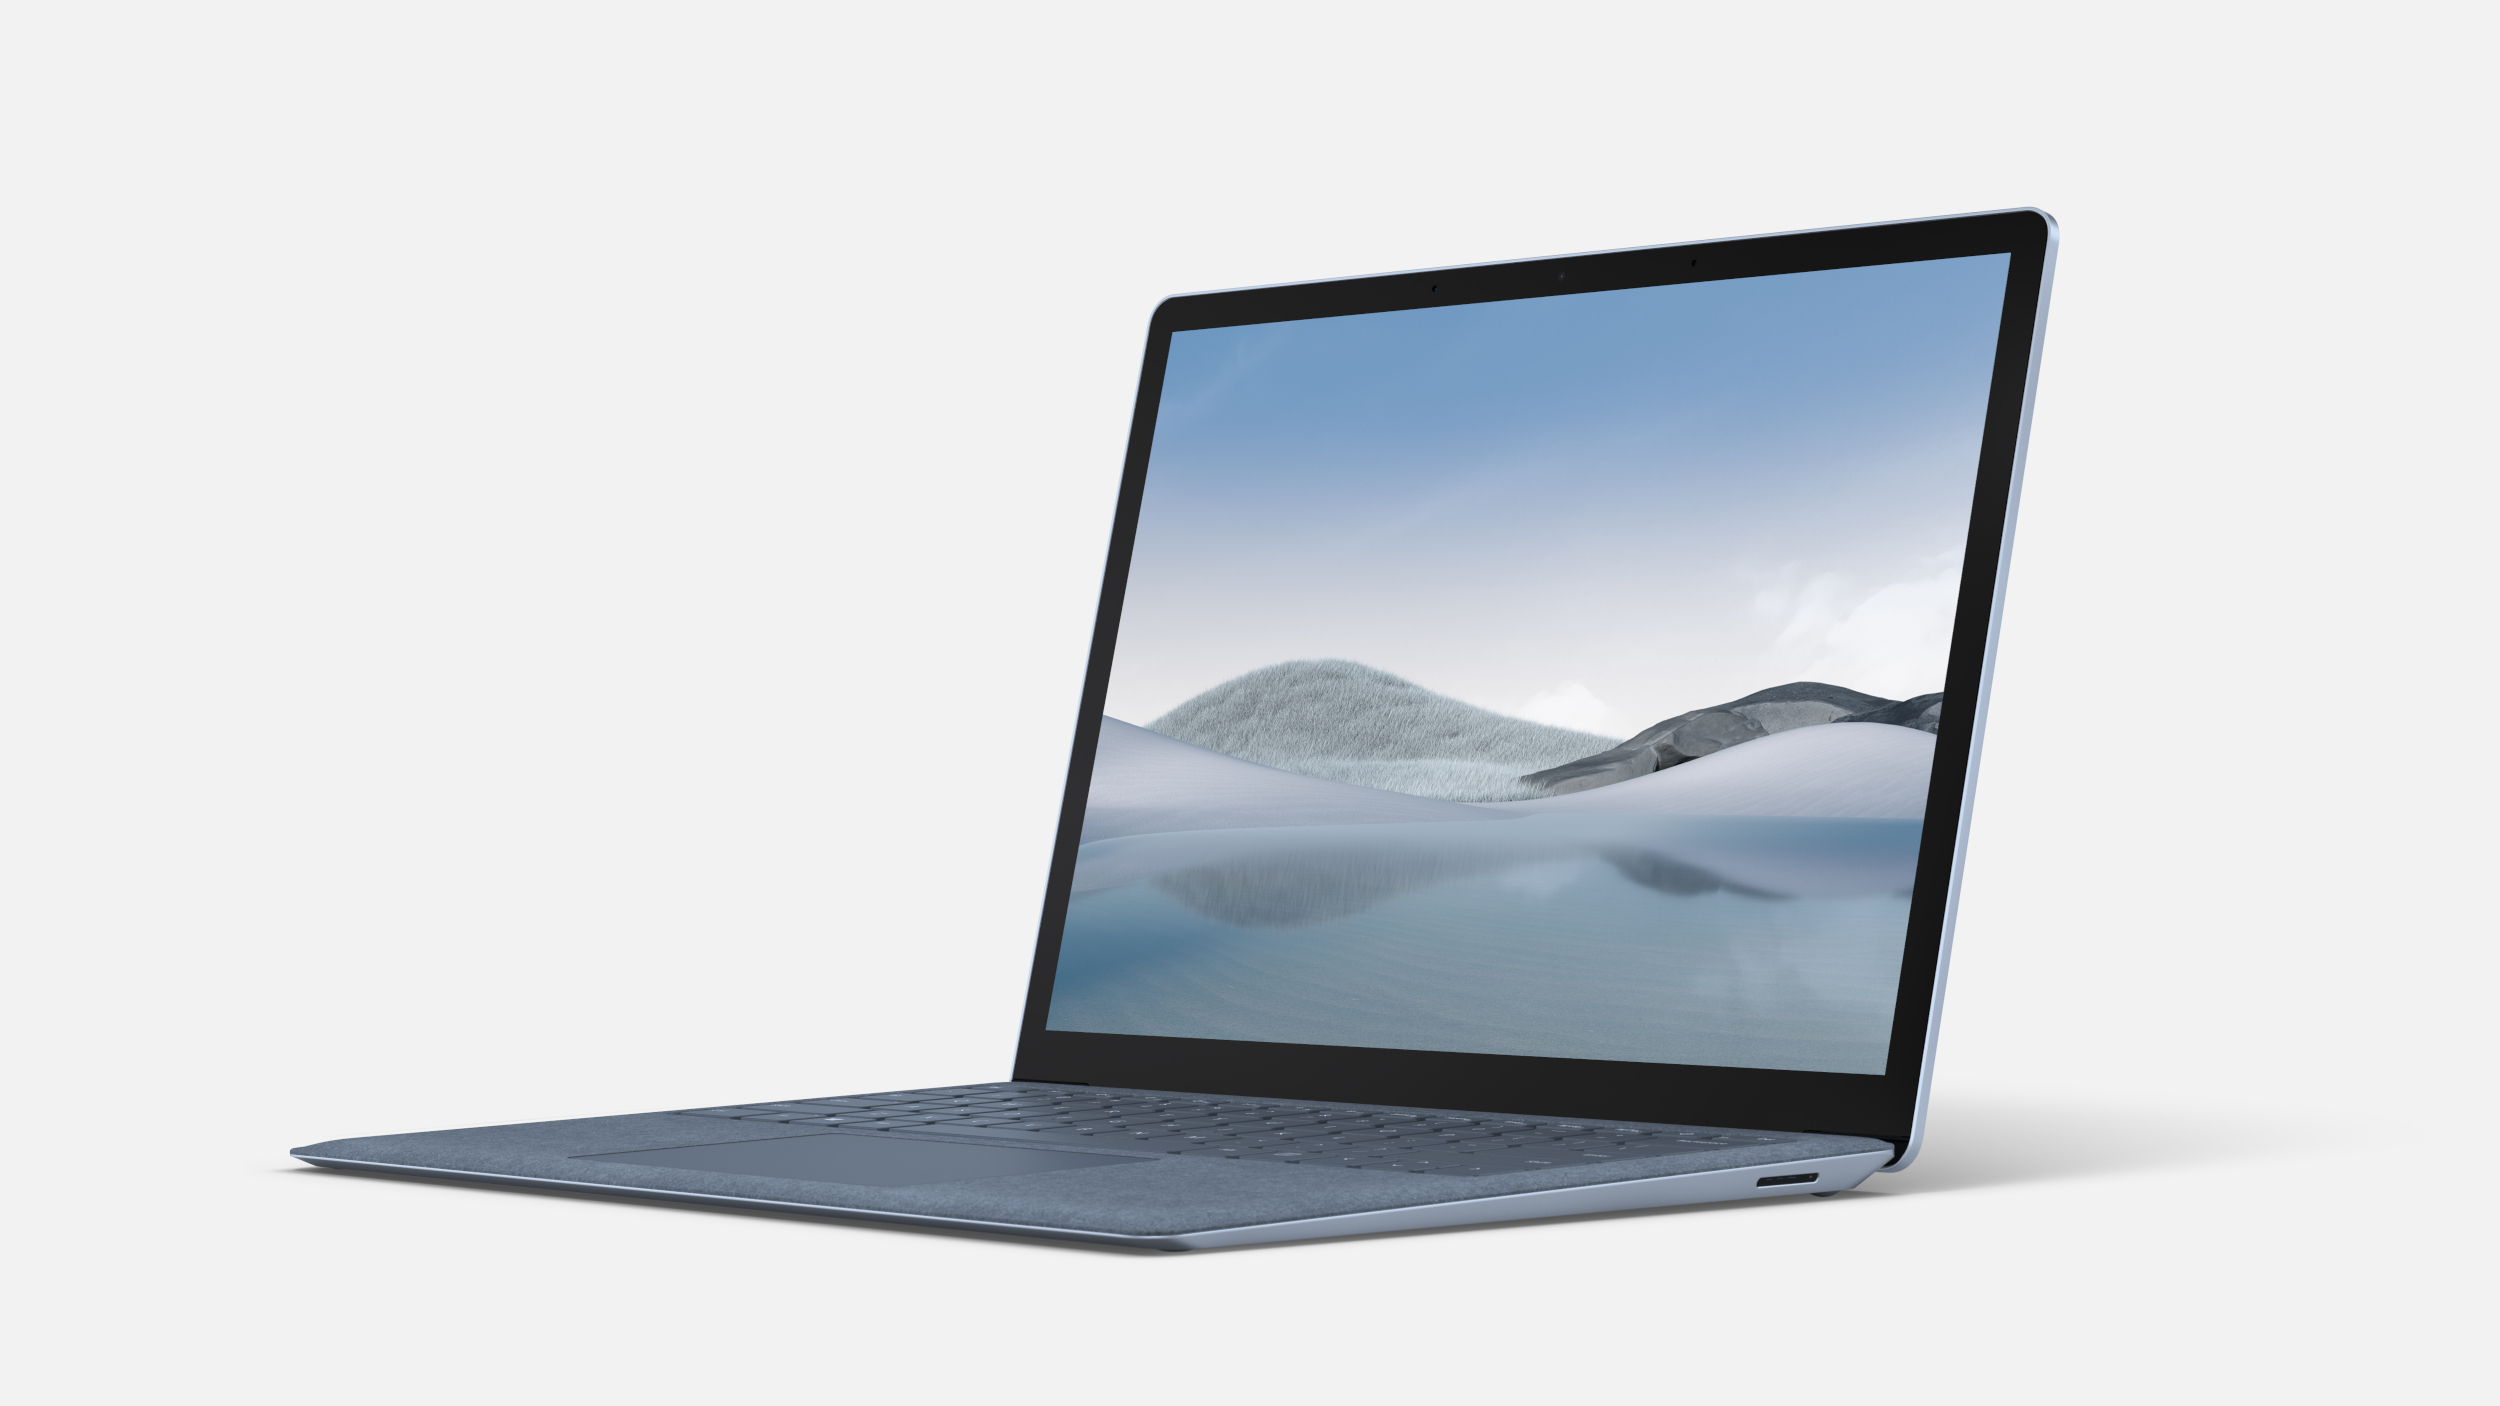 A marketing render of a Surface Laptop 4 on a white background